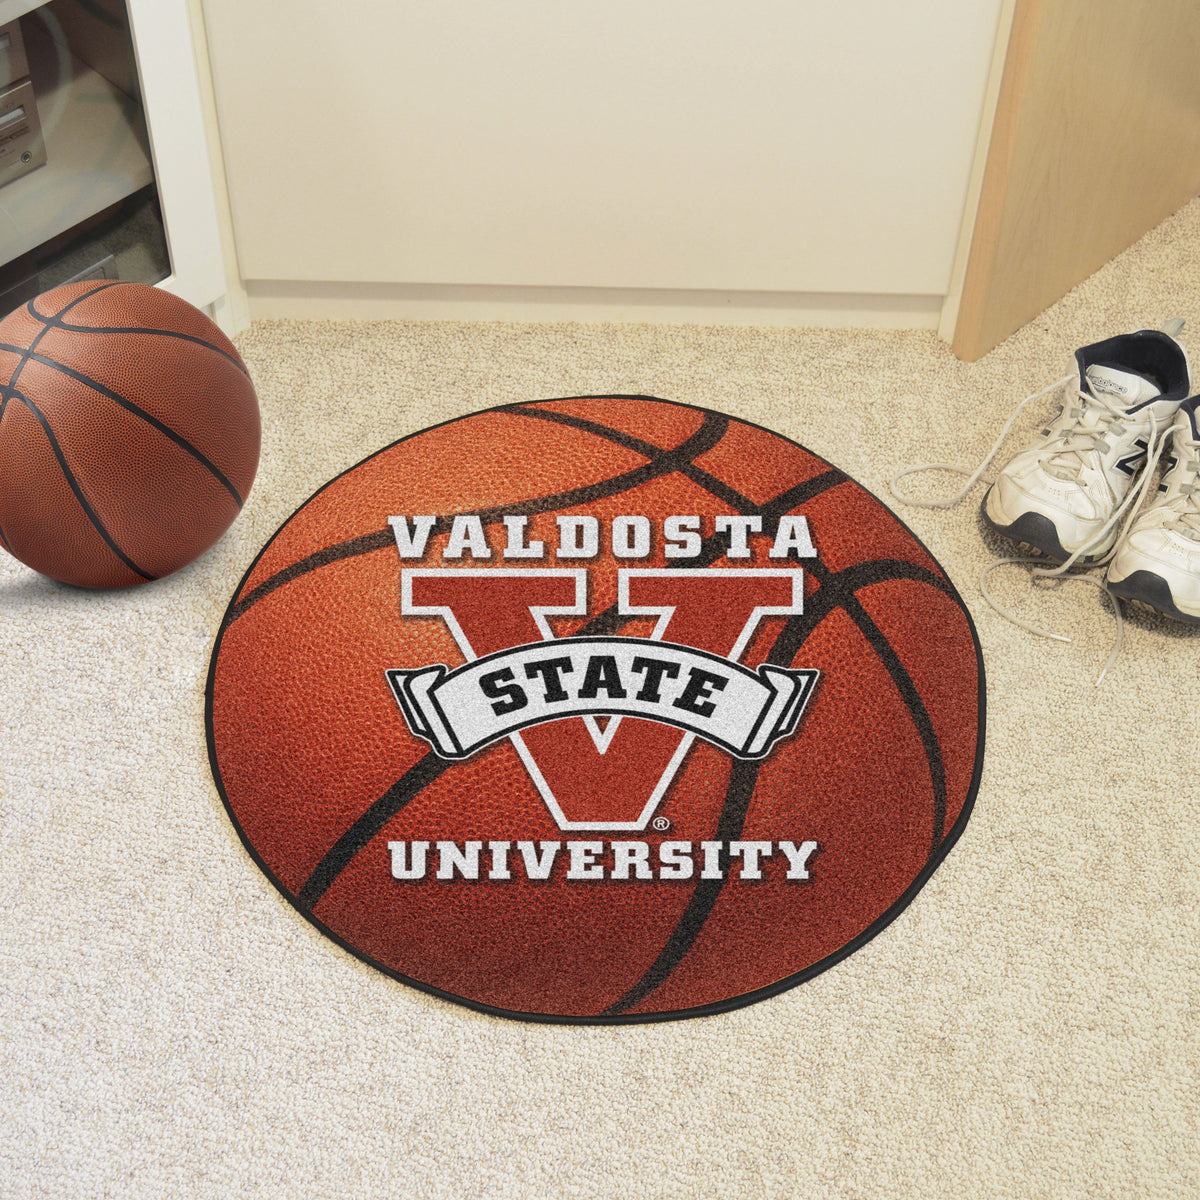 Collegiate - Basketball Mat: T - Z Collegiate Mats, Rectangular Mats, Basketball Mat, Collegiate, Home Fan Mats Valdosta State